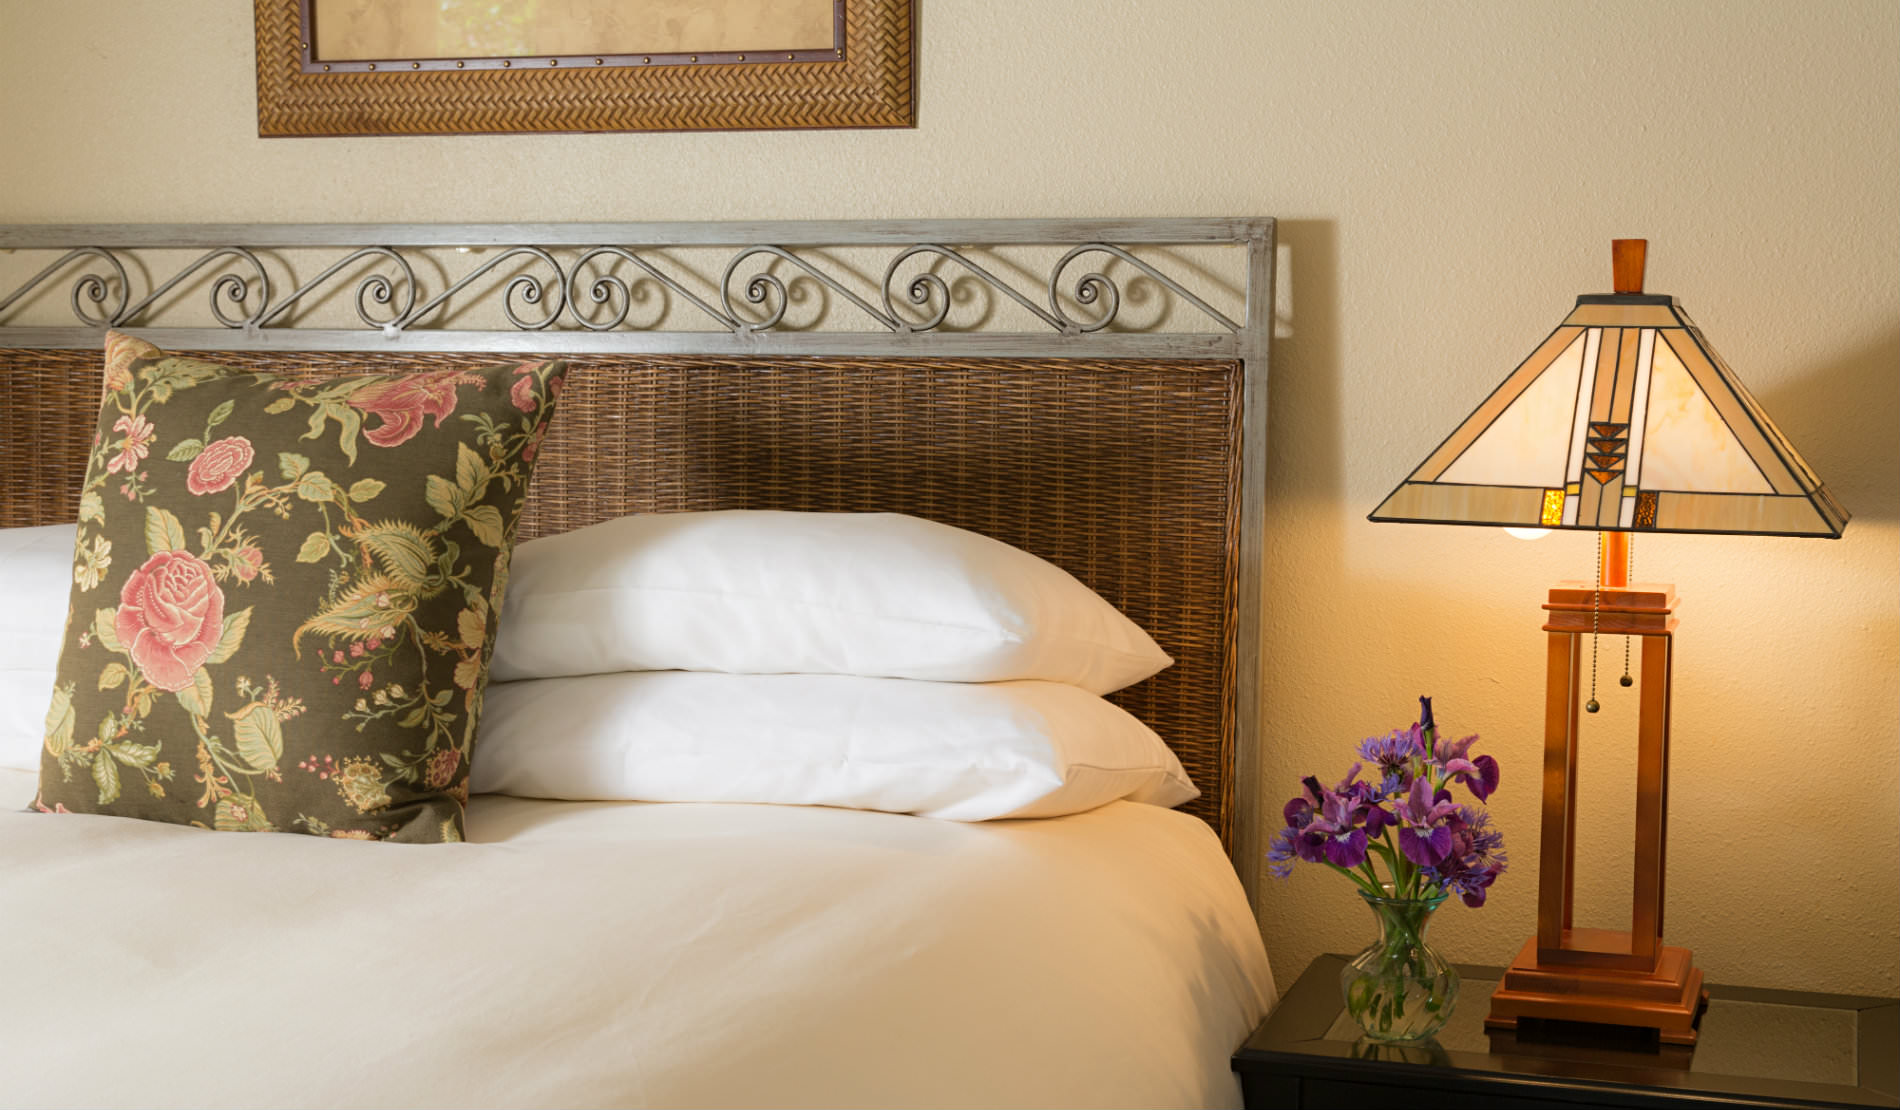 Soft white bedding and pillows on bed next to sidetable with craftsman-style lamp and purple flowers.